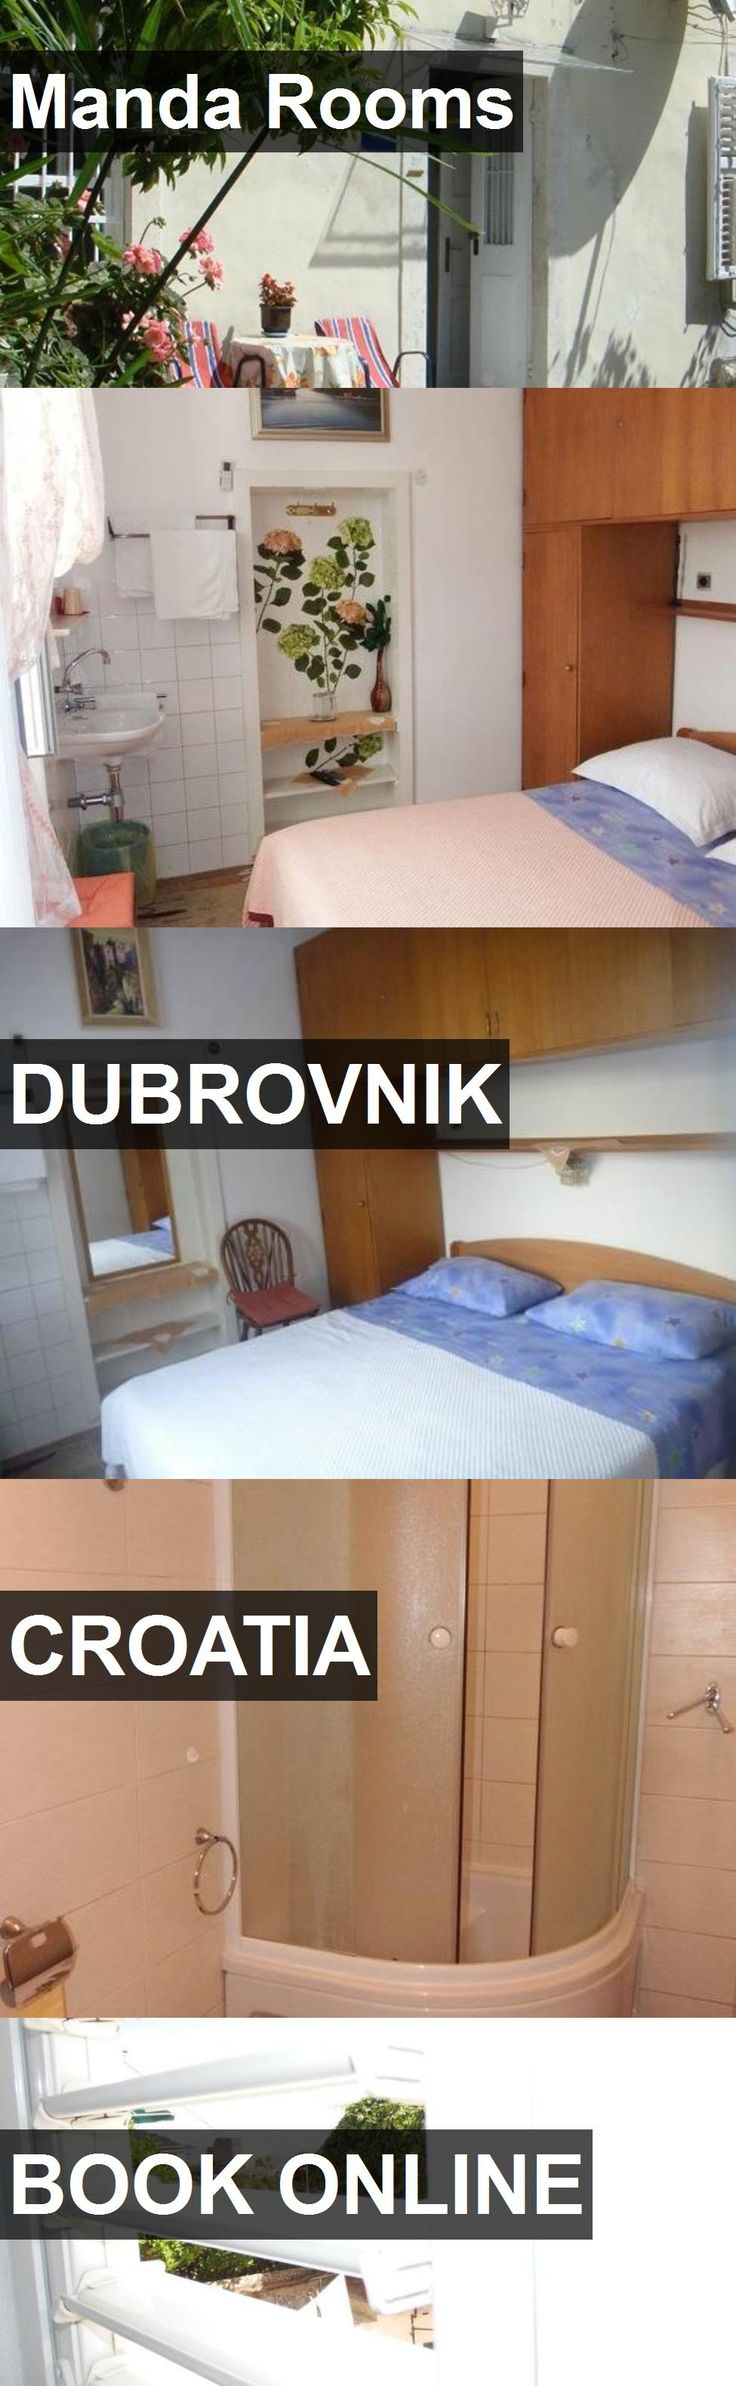 Hotel Manda Rooms in Dubrovnik, Croatia. For more information, photos, reviews and best prices please follow the link. #Croatia #Dubrovnik #travel #vacation #hotel